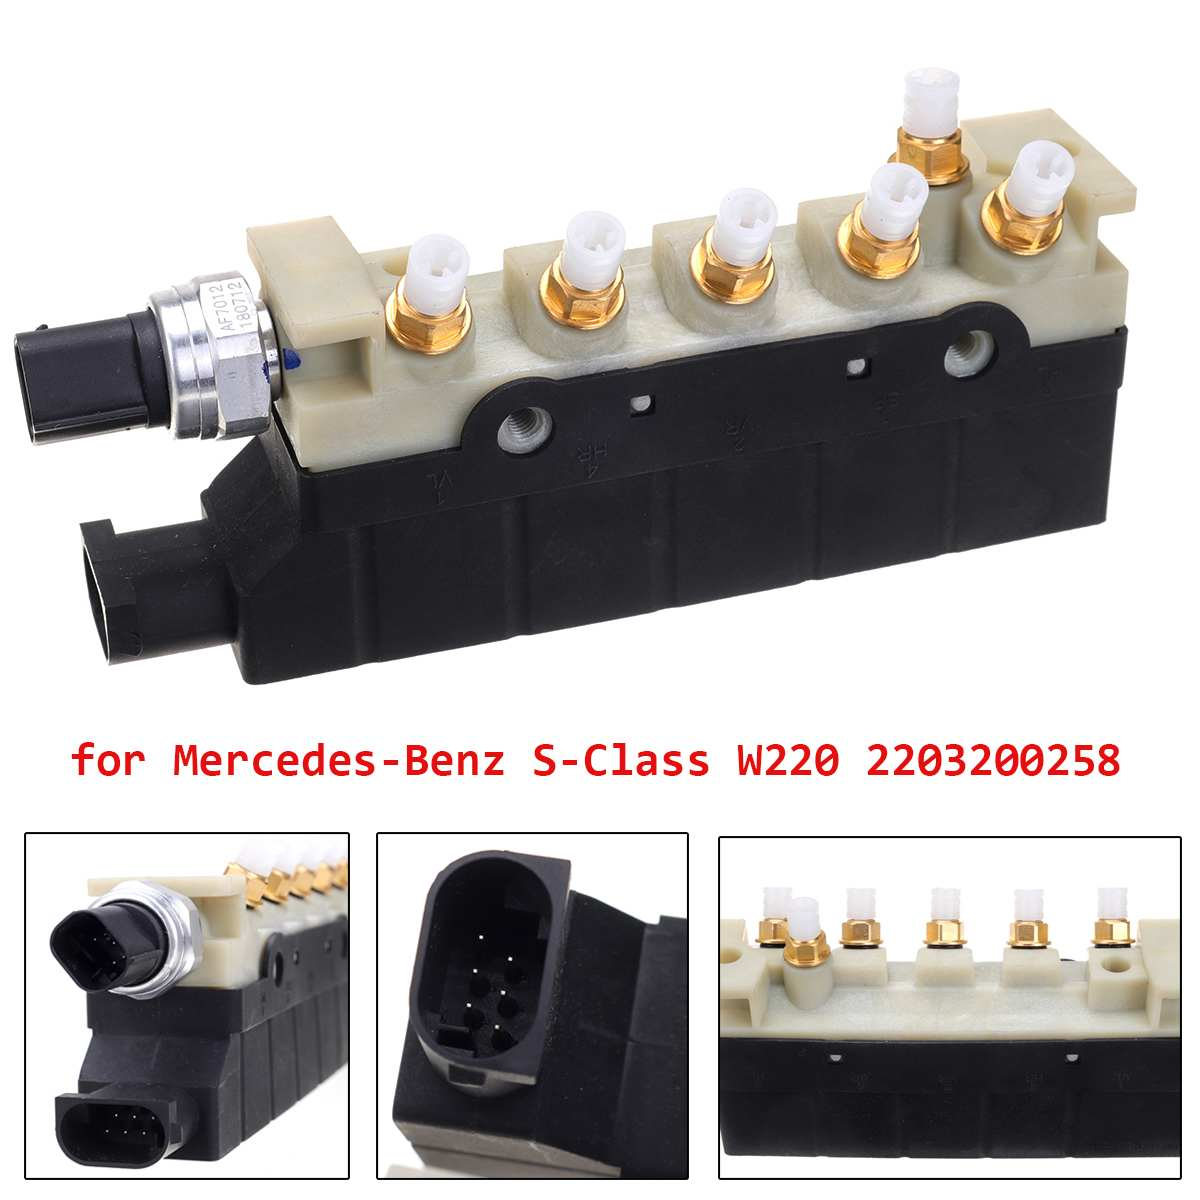 Air Suspension Compressor Valve Block for AMG 2000-2006 For Mercedes-Benz S-Class W220 2203200258 S350 S430 S500 S600 S55 S65 Air Suspension Compressor Valve Block for AMG 2000-2006 For Mercedes-Benz S-Class W220 2203200258 S350 S430 S500 S600 S55 S65